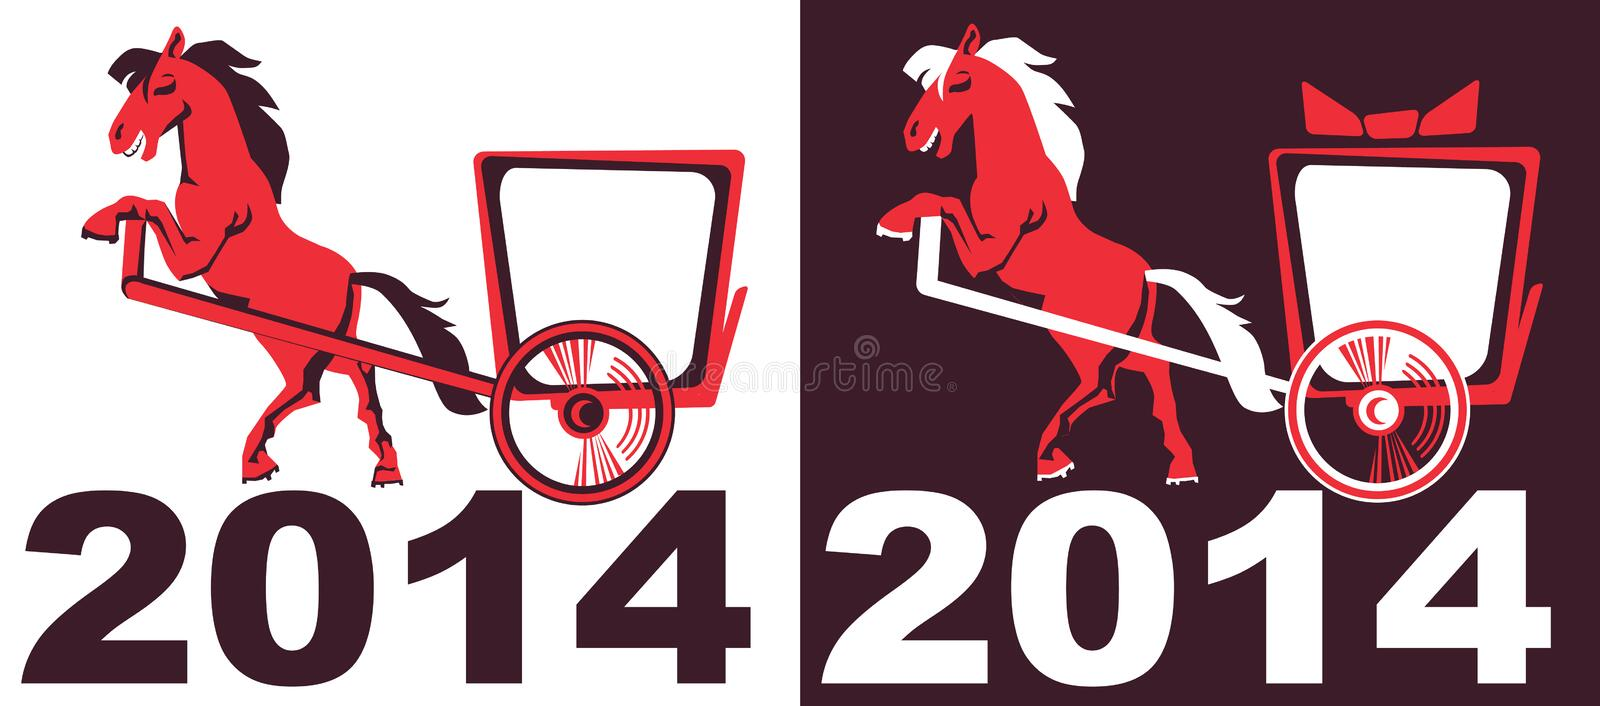 2014 - Year of the Horse on the eastern calendar royalty free stock photo